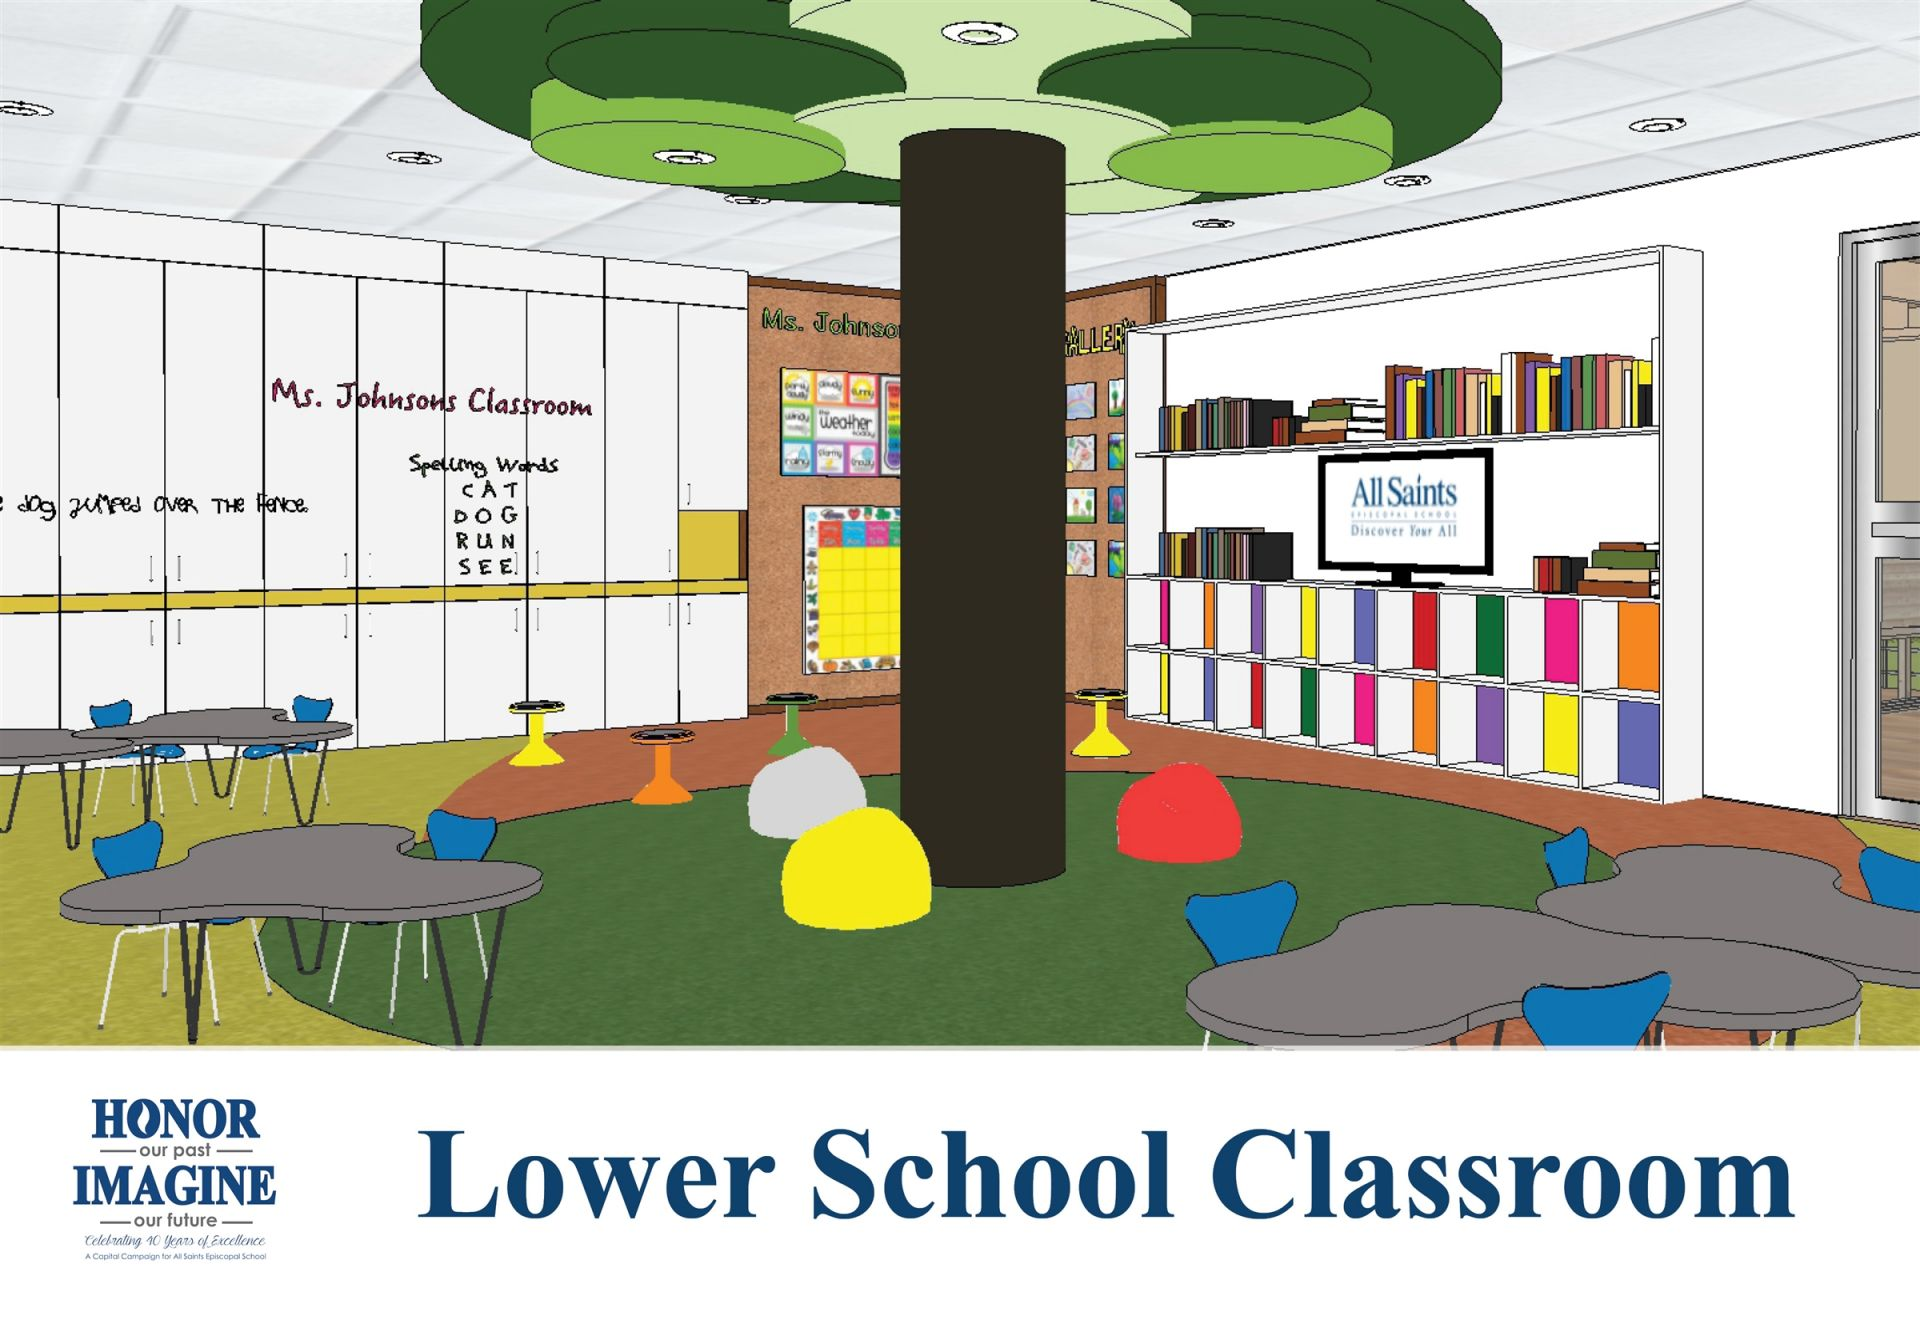 We will renovate all Early Learning and Lower School Classrooms in Summer 2019.